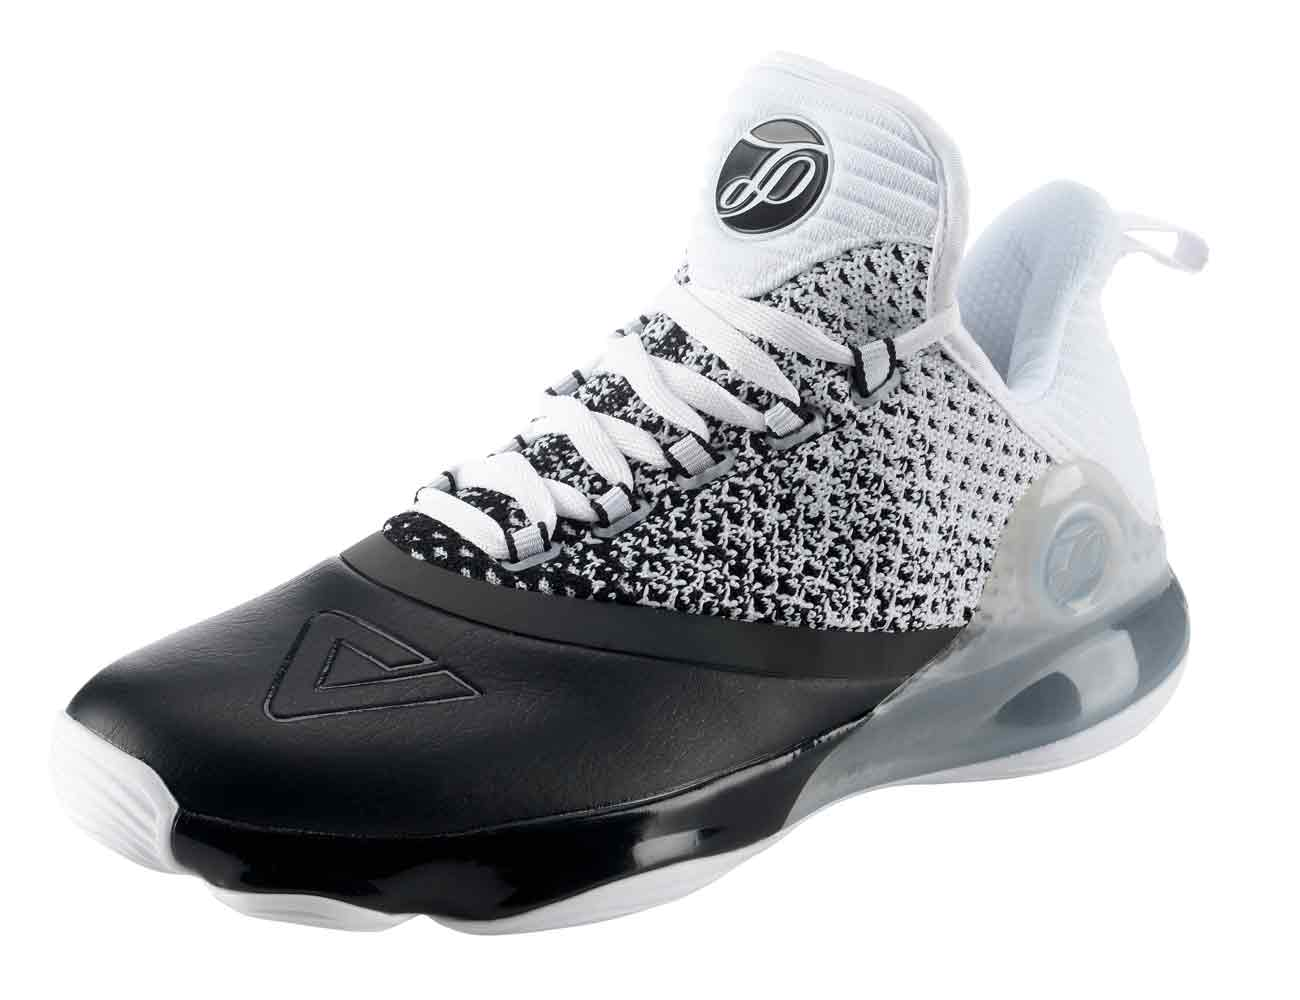 PEAK Basketballschuh Tony Parker TP VI